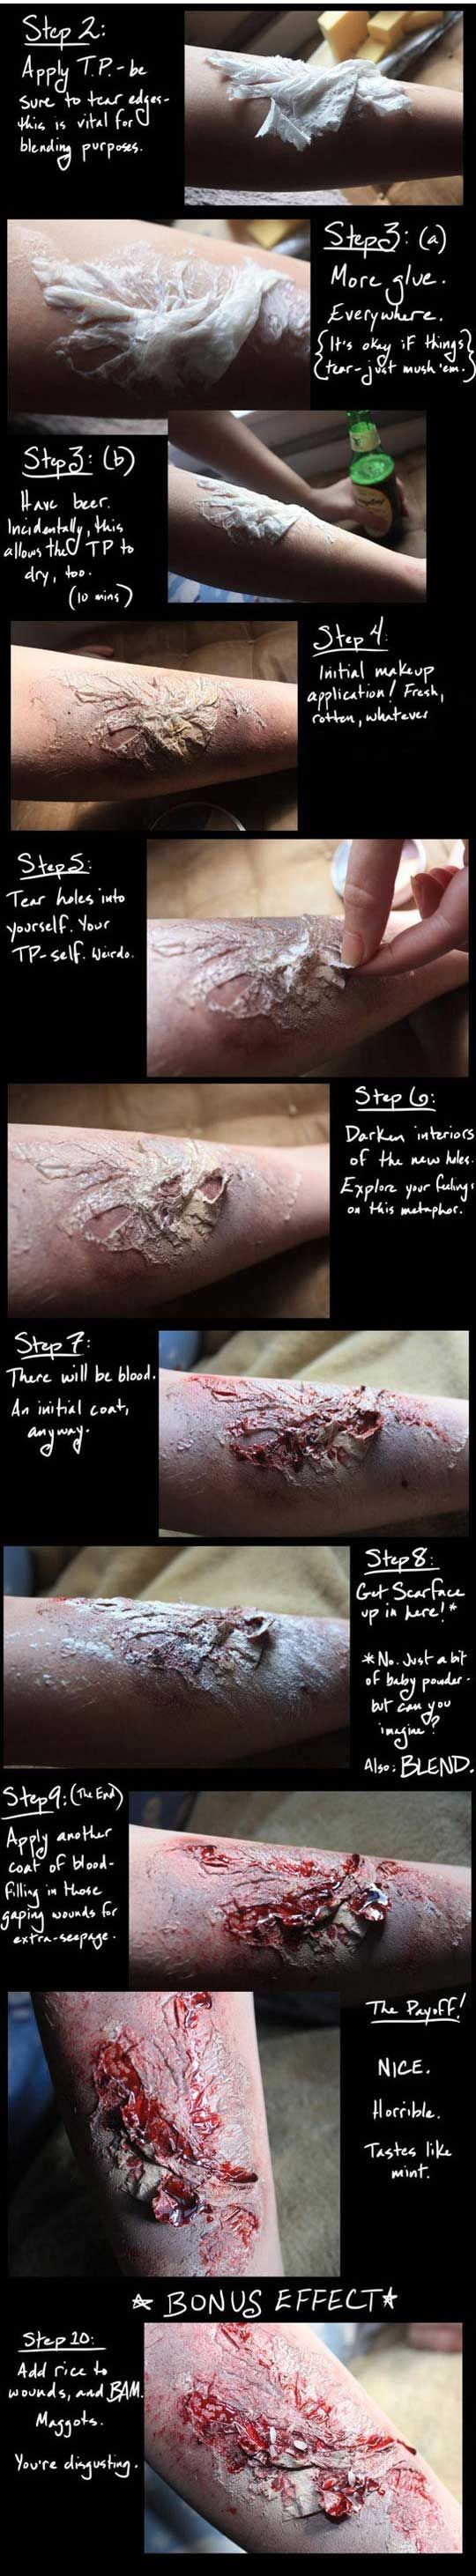 joindarkside » WOUND MAKEUP TUTORIAL!